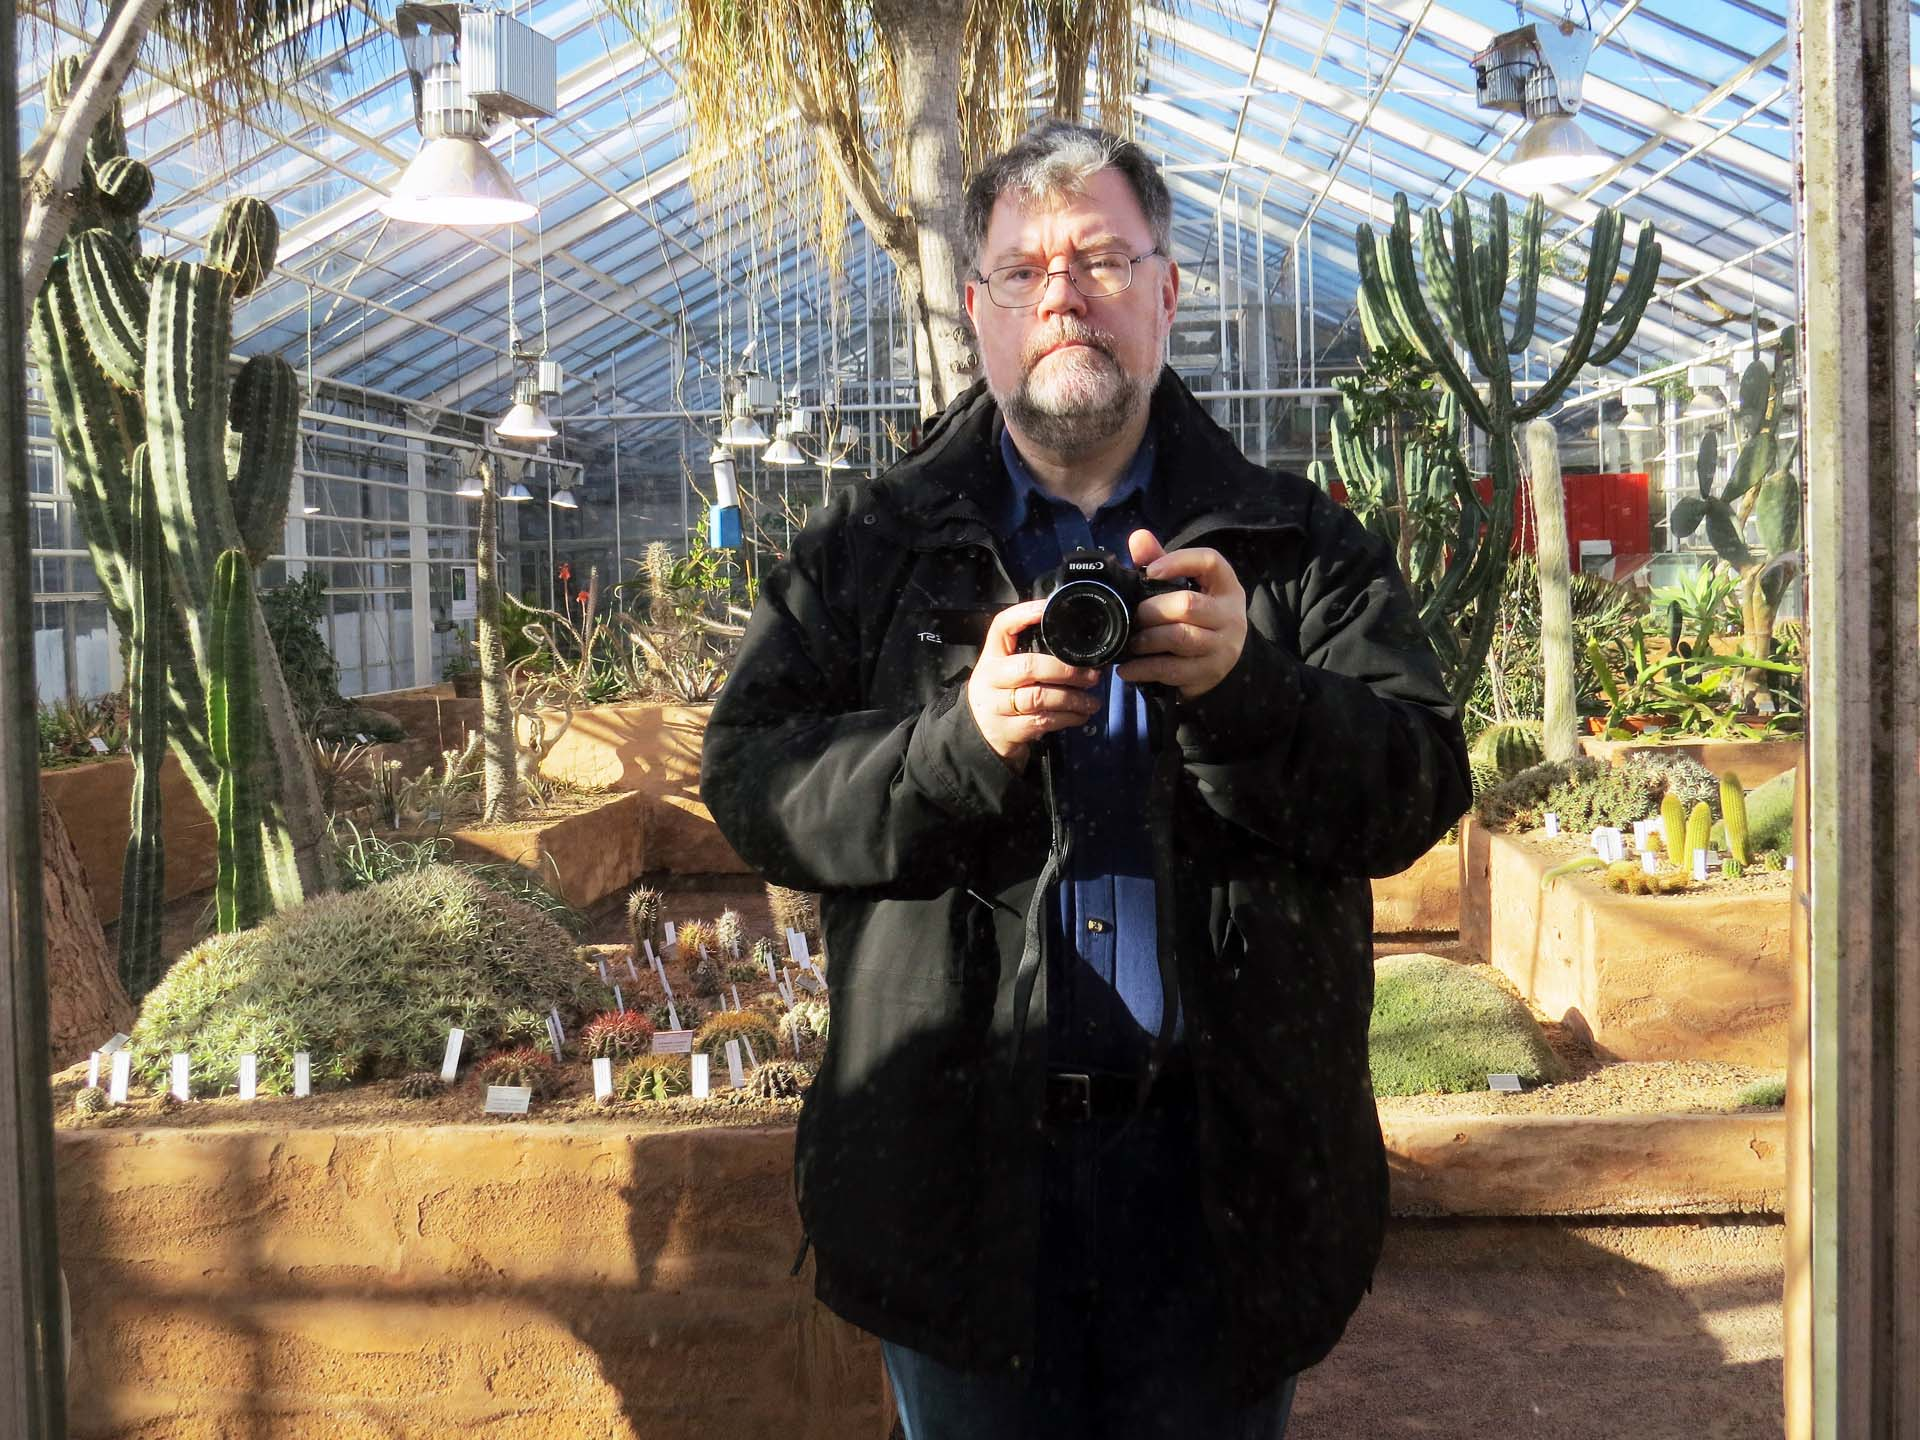 Photographer among the cactuses